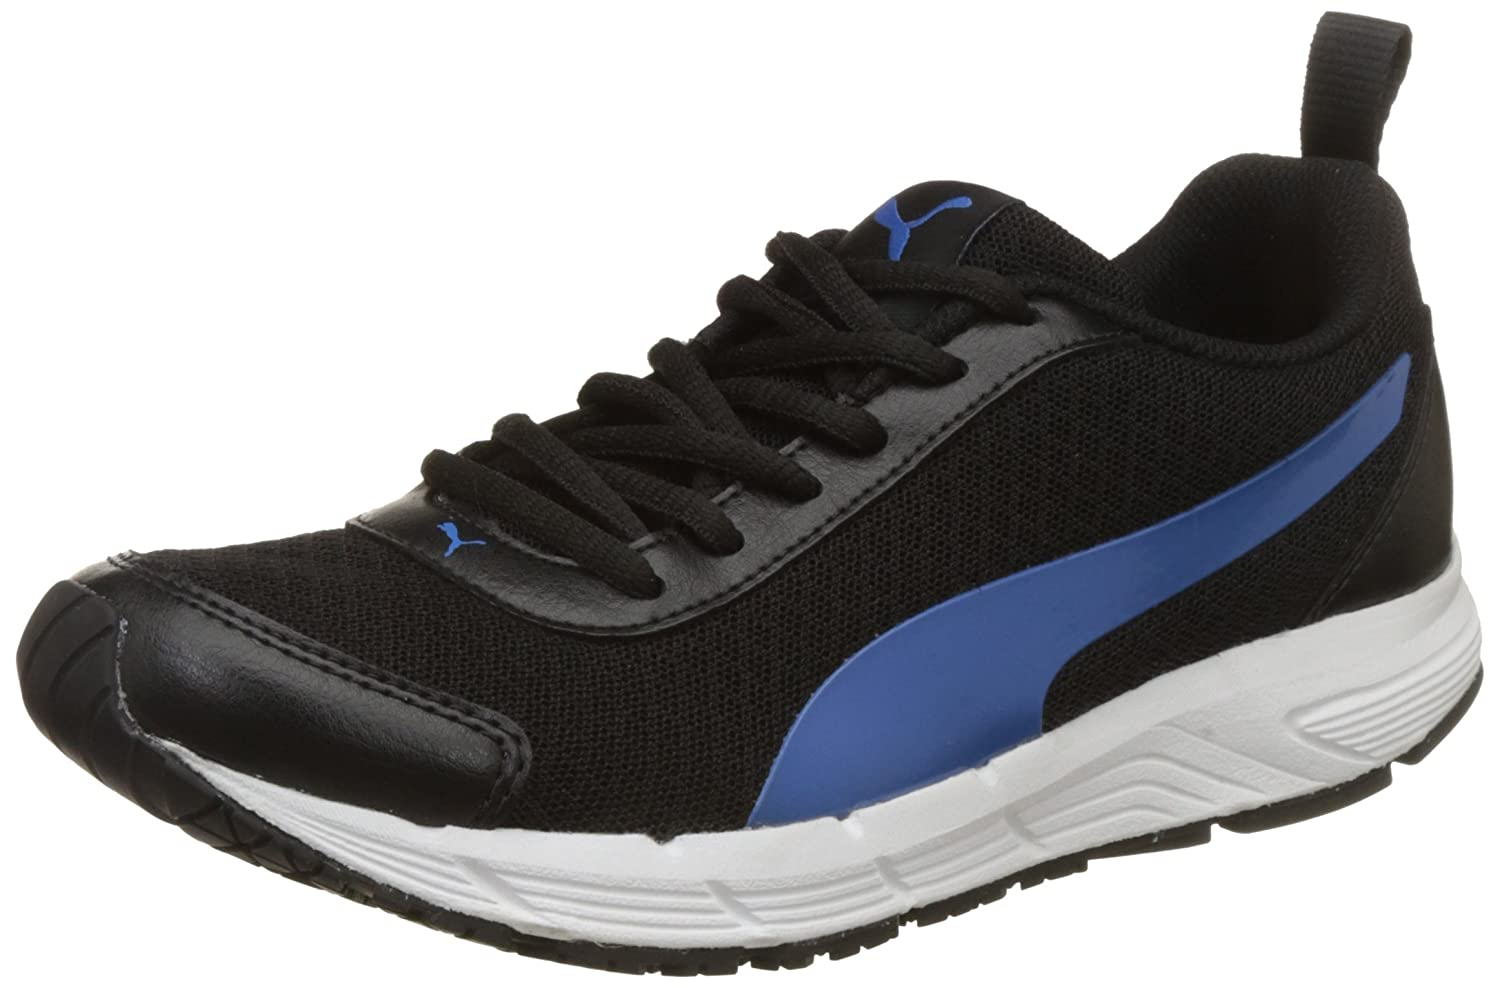 d2cb29053fa8 Puma Unisex Proton IDP Sneakers  Buy Online at Low Prices in India -  Amazon.in